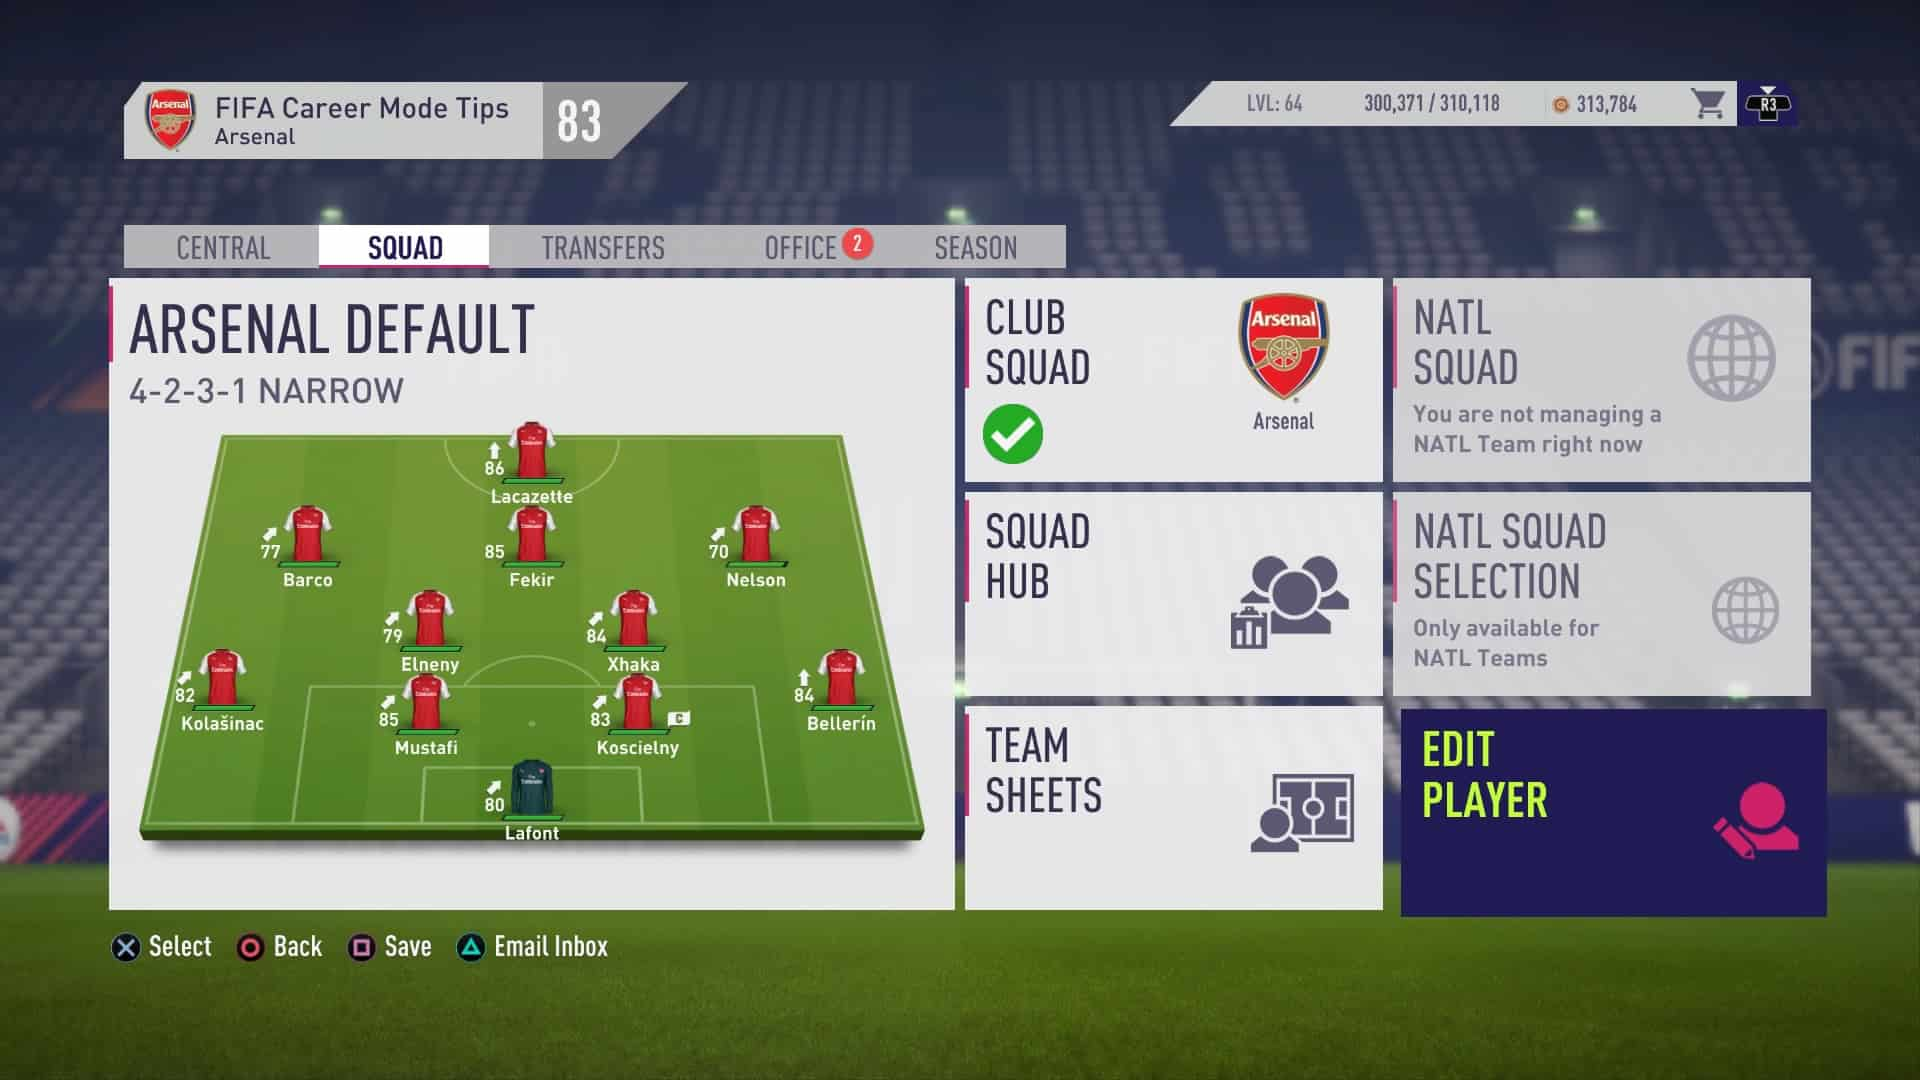 How to Edit Player Appearance in FIFA 18